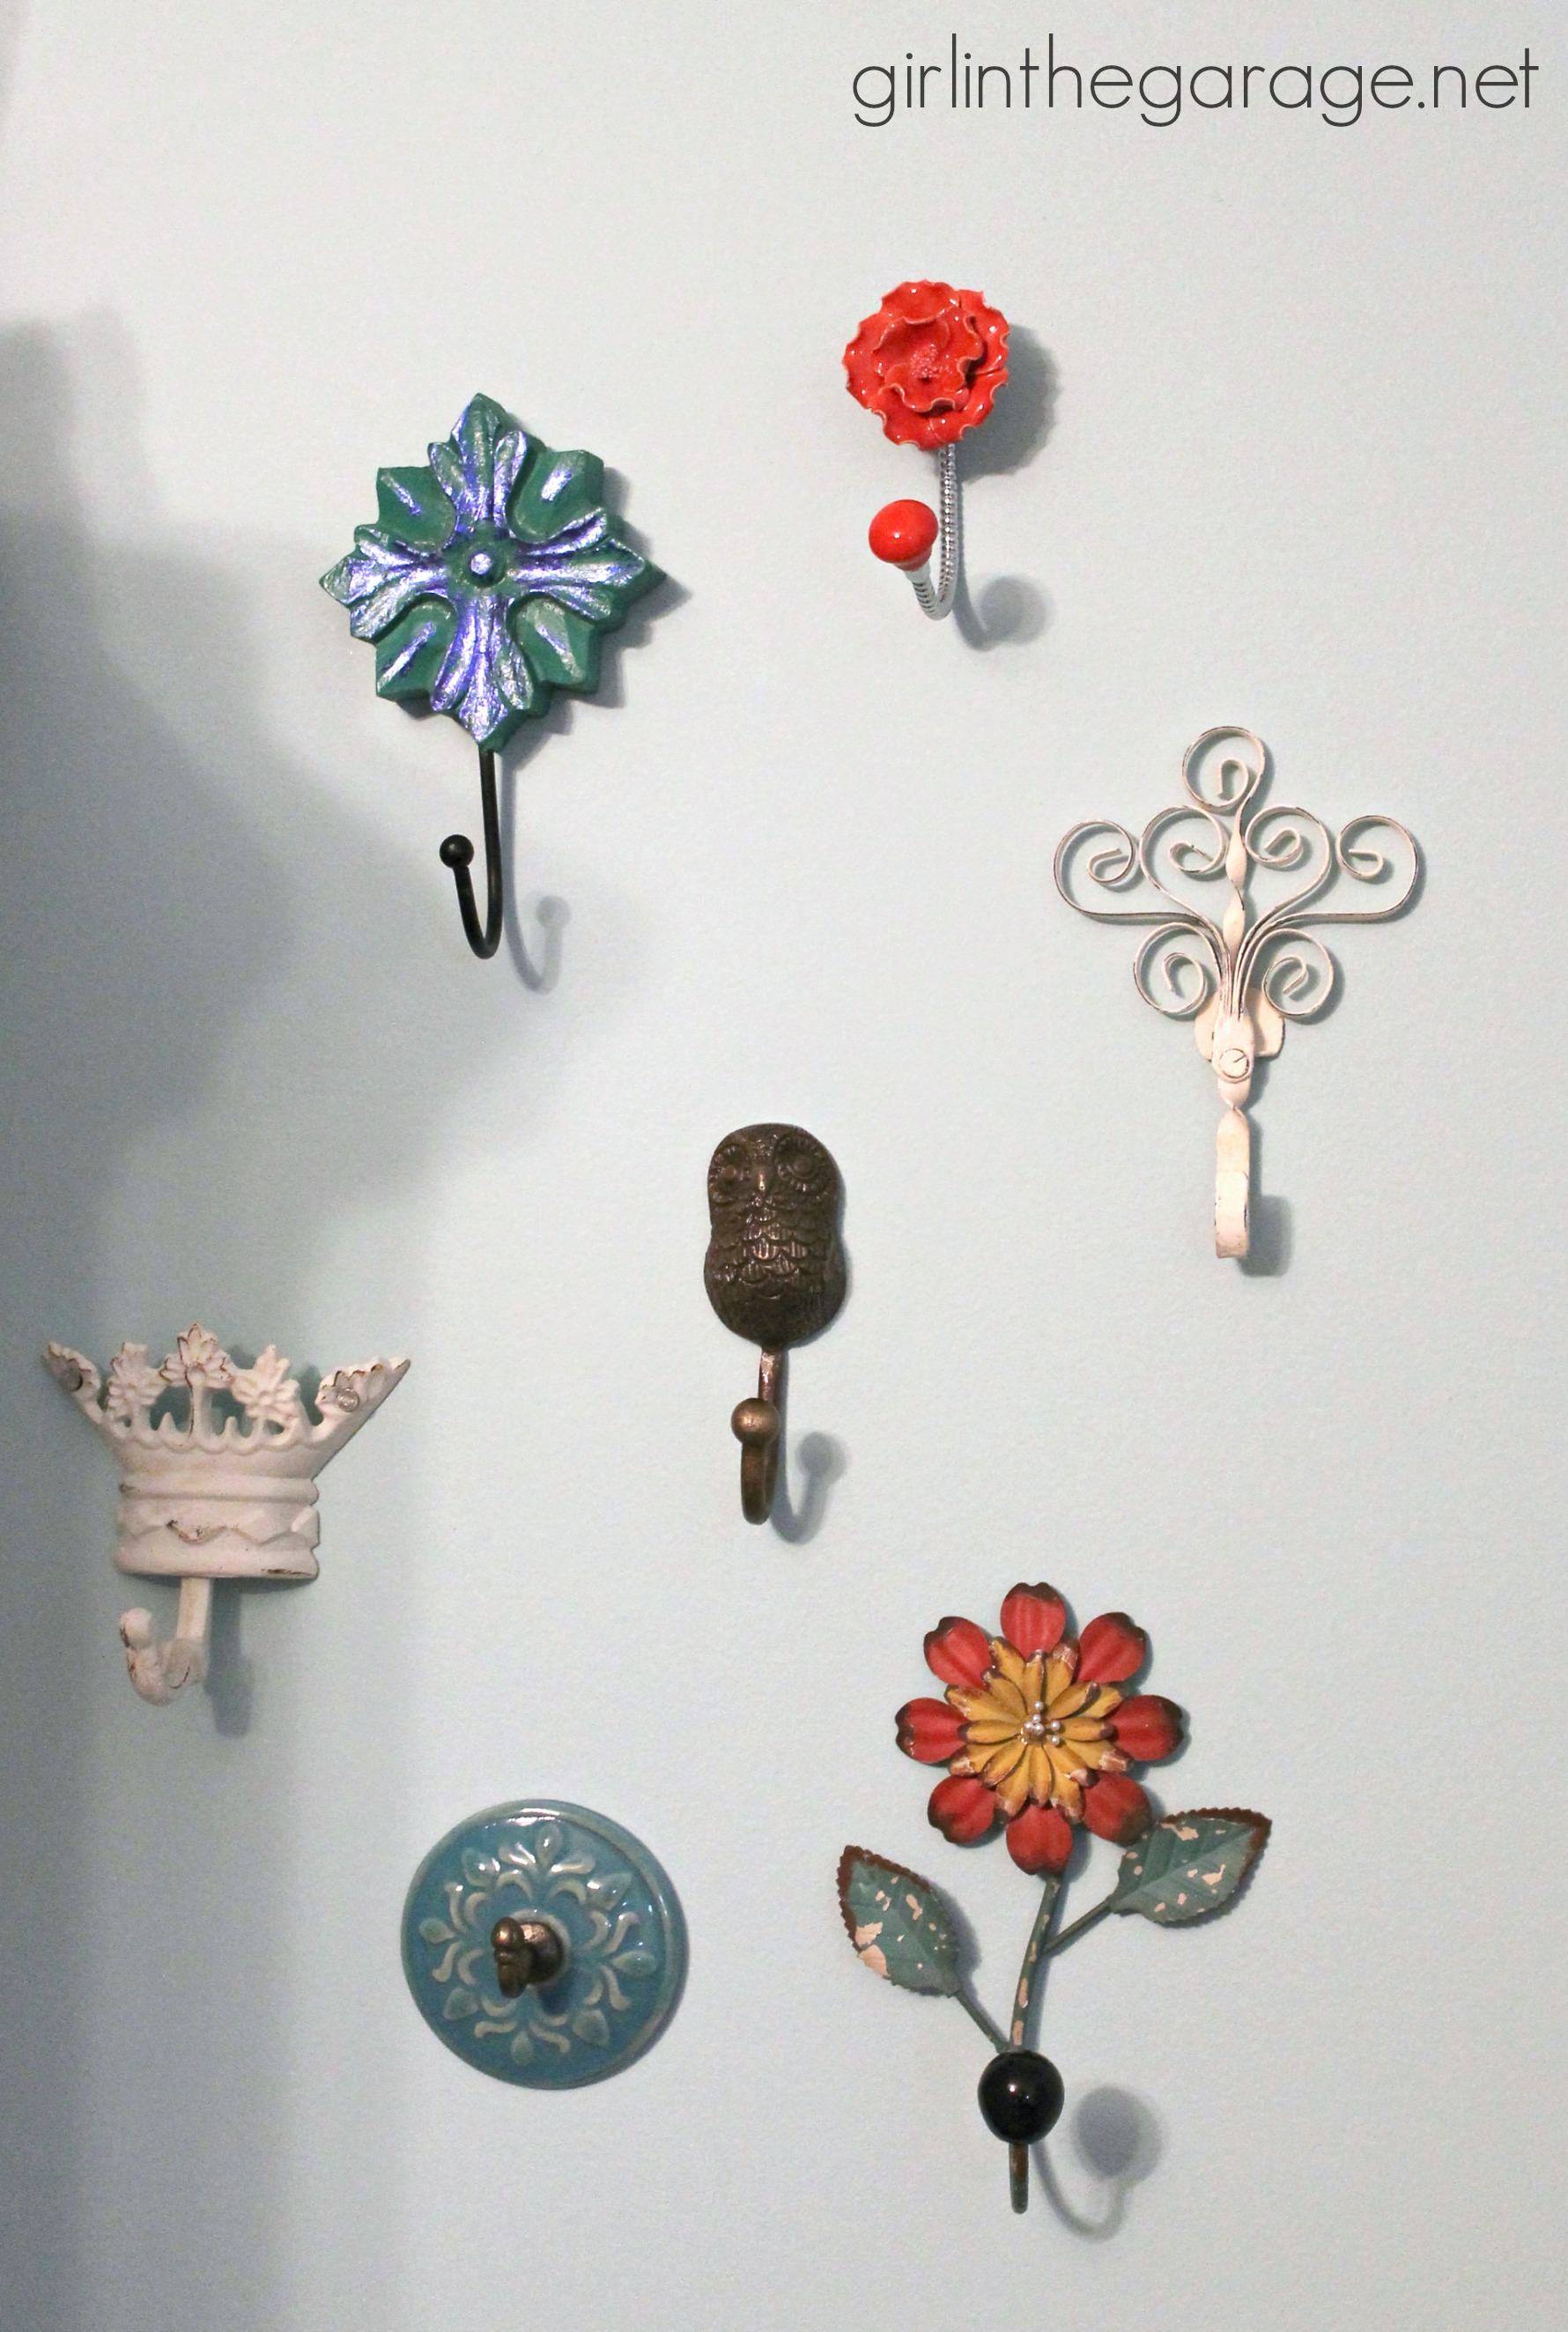 Decorative Wall Hooks As Jewelry Storage Girl In The Garage 174